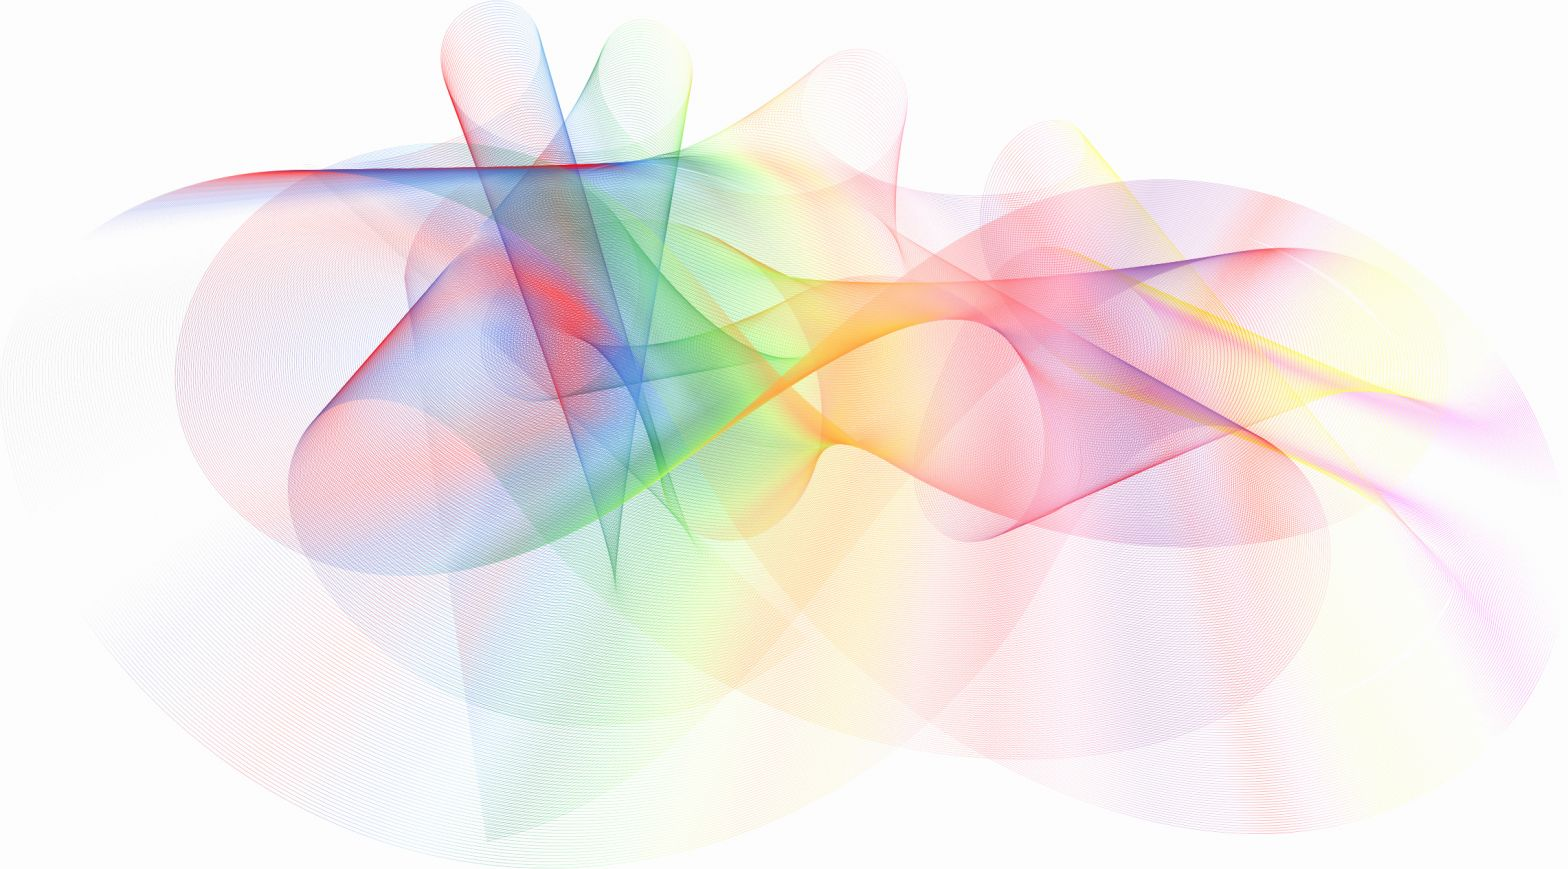 Abstract Ppt then Colorful Background Designs 44 Images